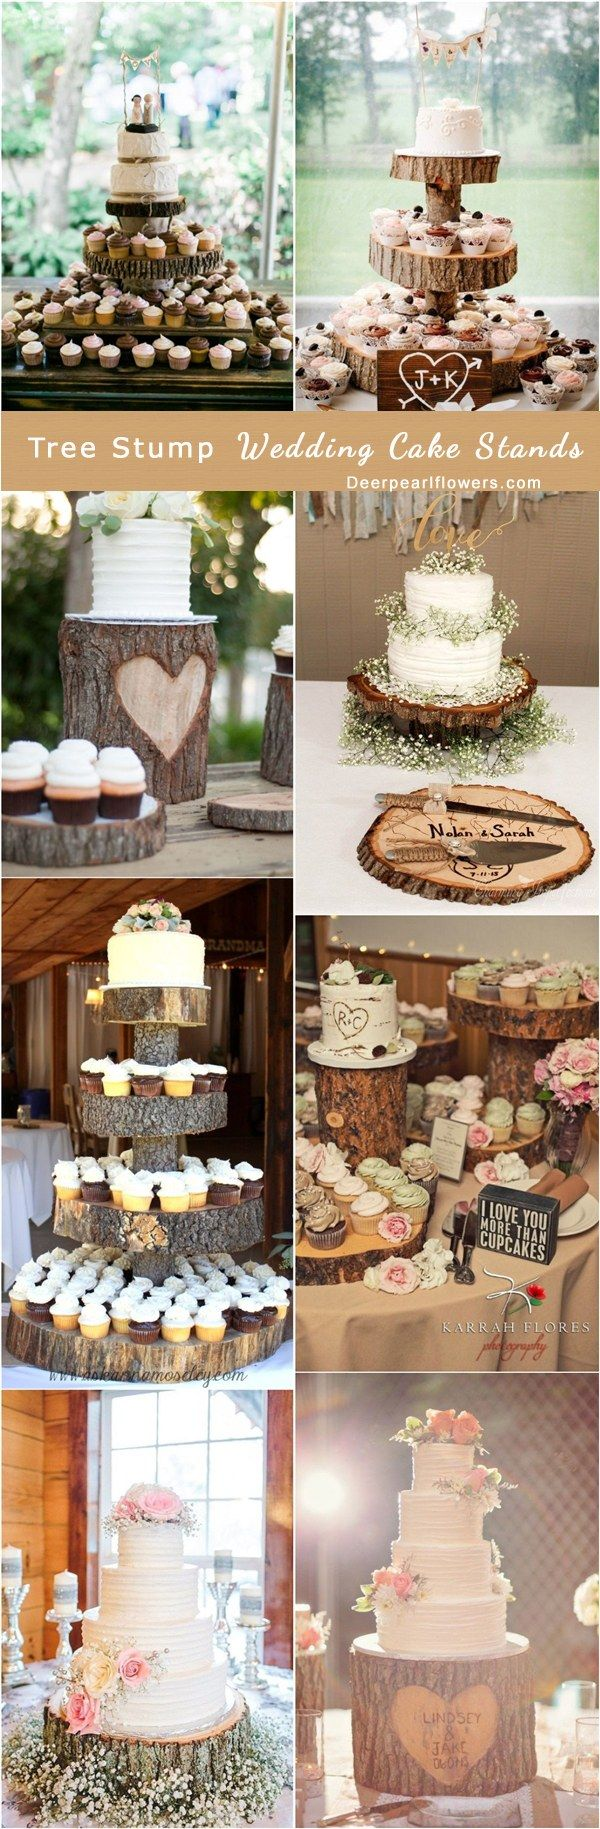 Wedding decorations rustic october 2018 Rustic Woodsy Wedding Trend   Tree Stump  Wedding Inspiration